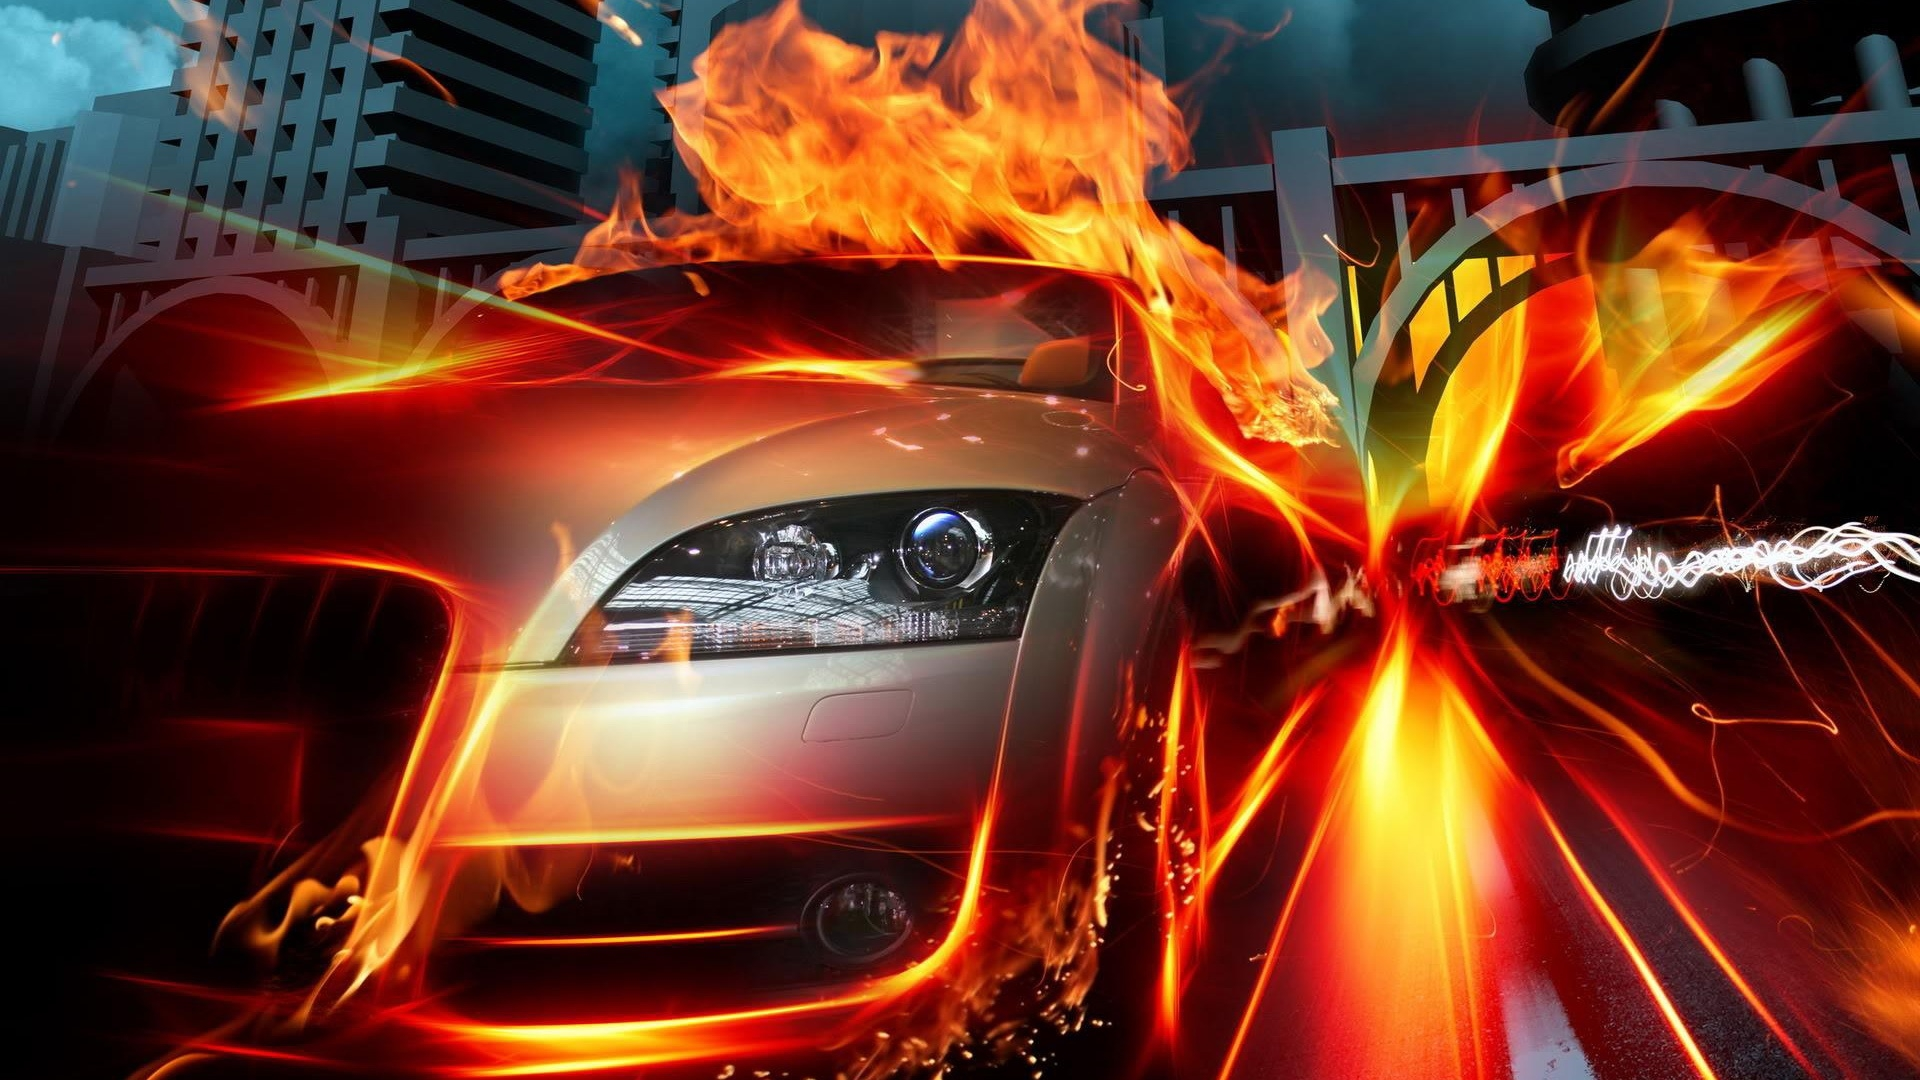 Car-Amazing-Wallpapers Awesome Wallpapers To Download For Your Desktop Background